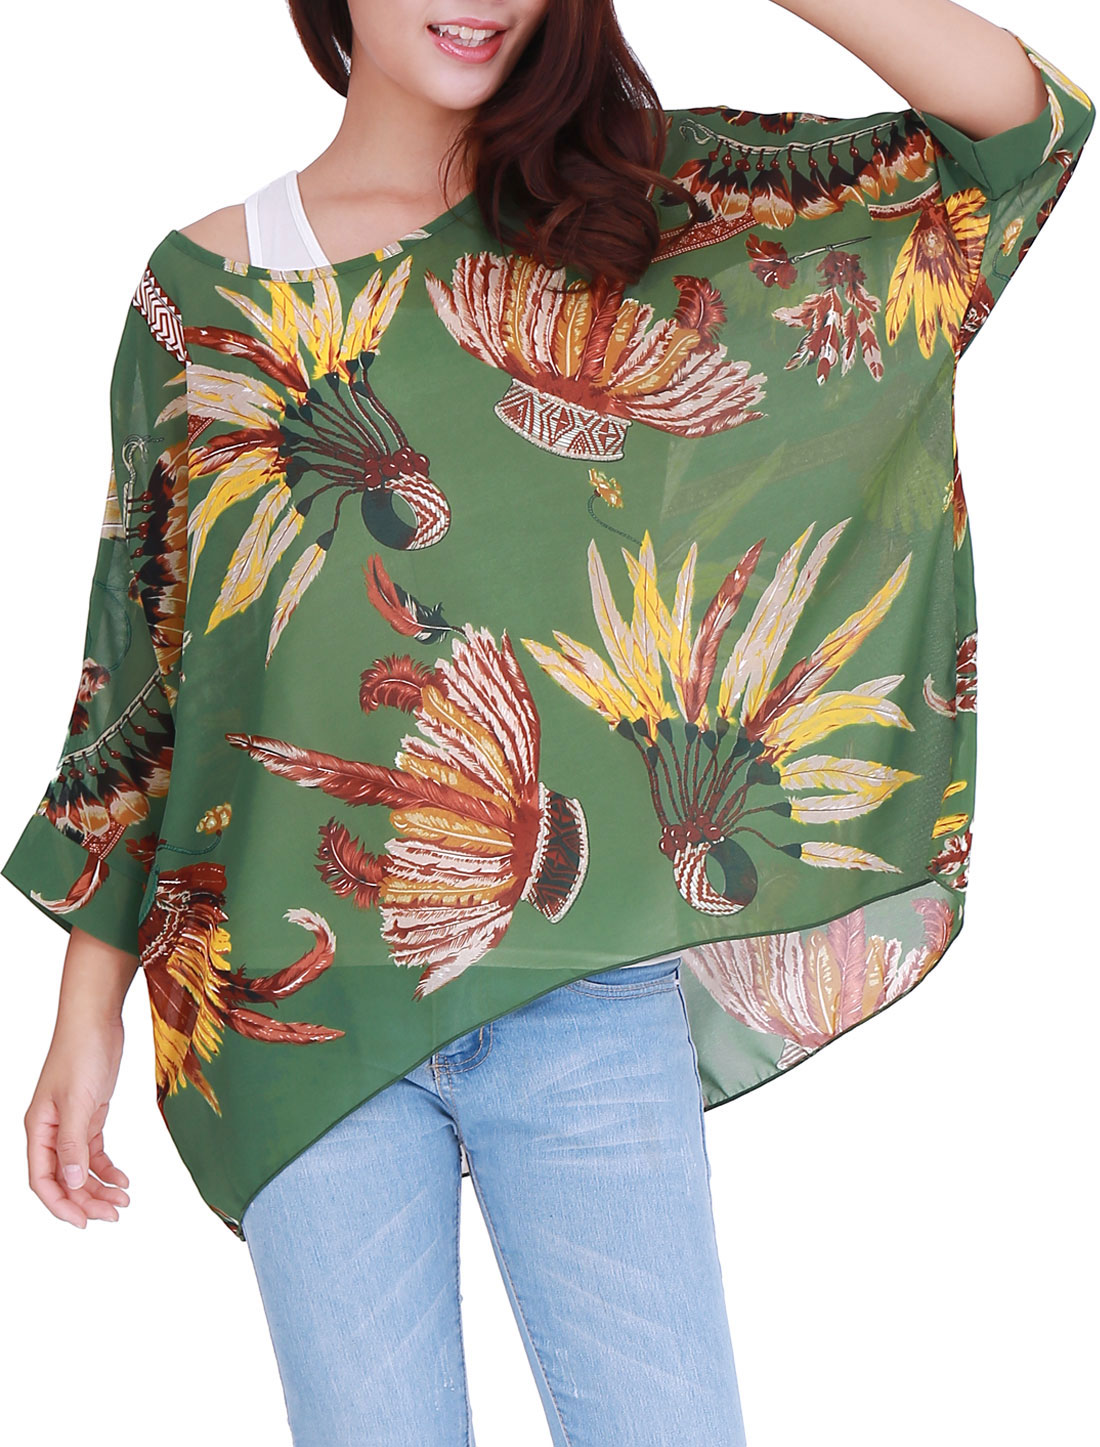 Ladies Feathers Pattern Asymmetric Hem Stylish Chiffon Top Green XL